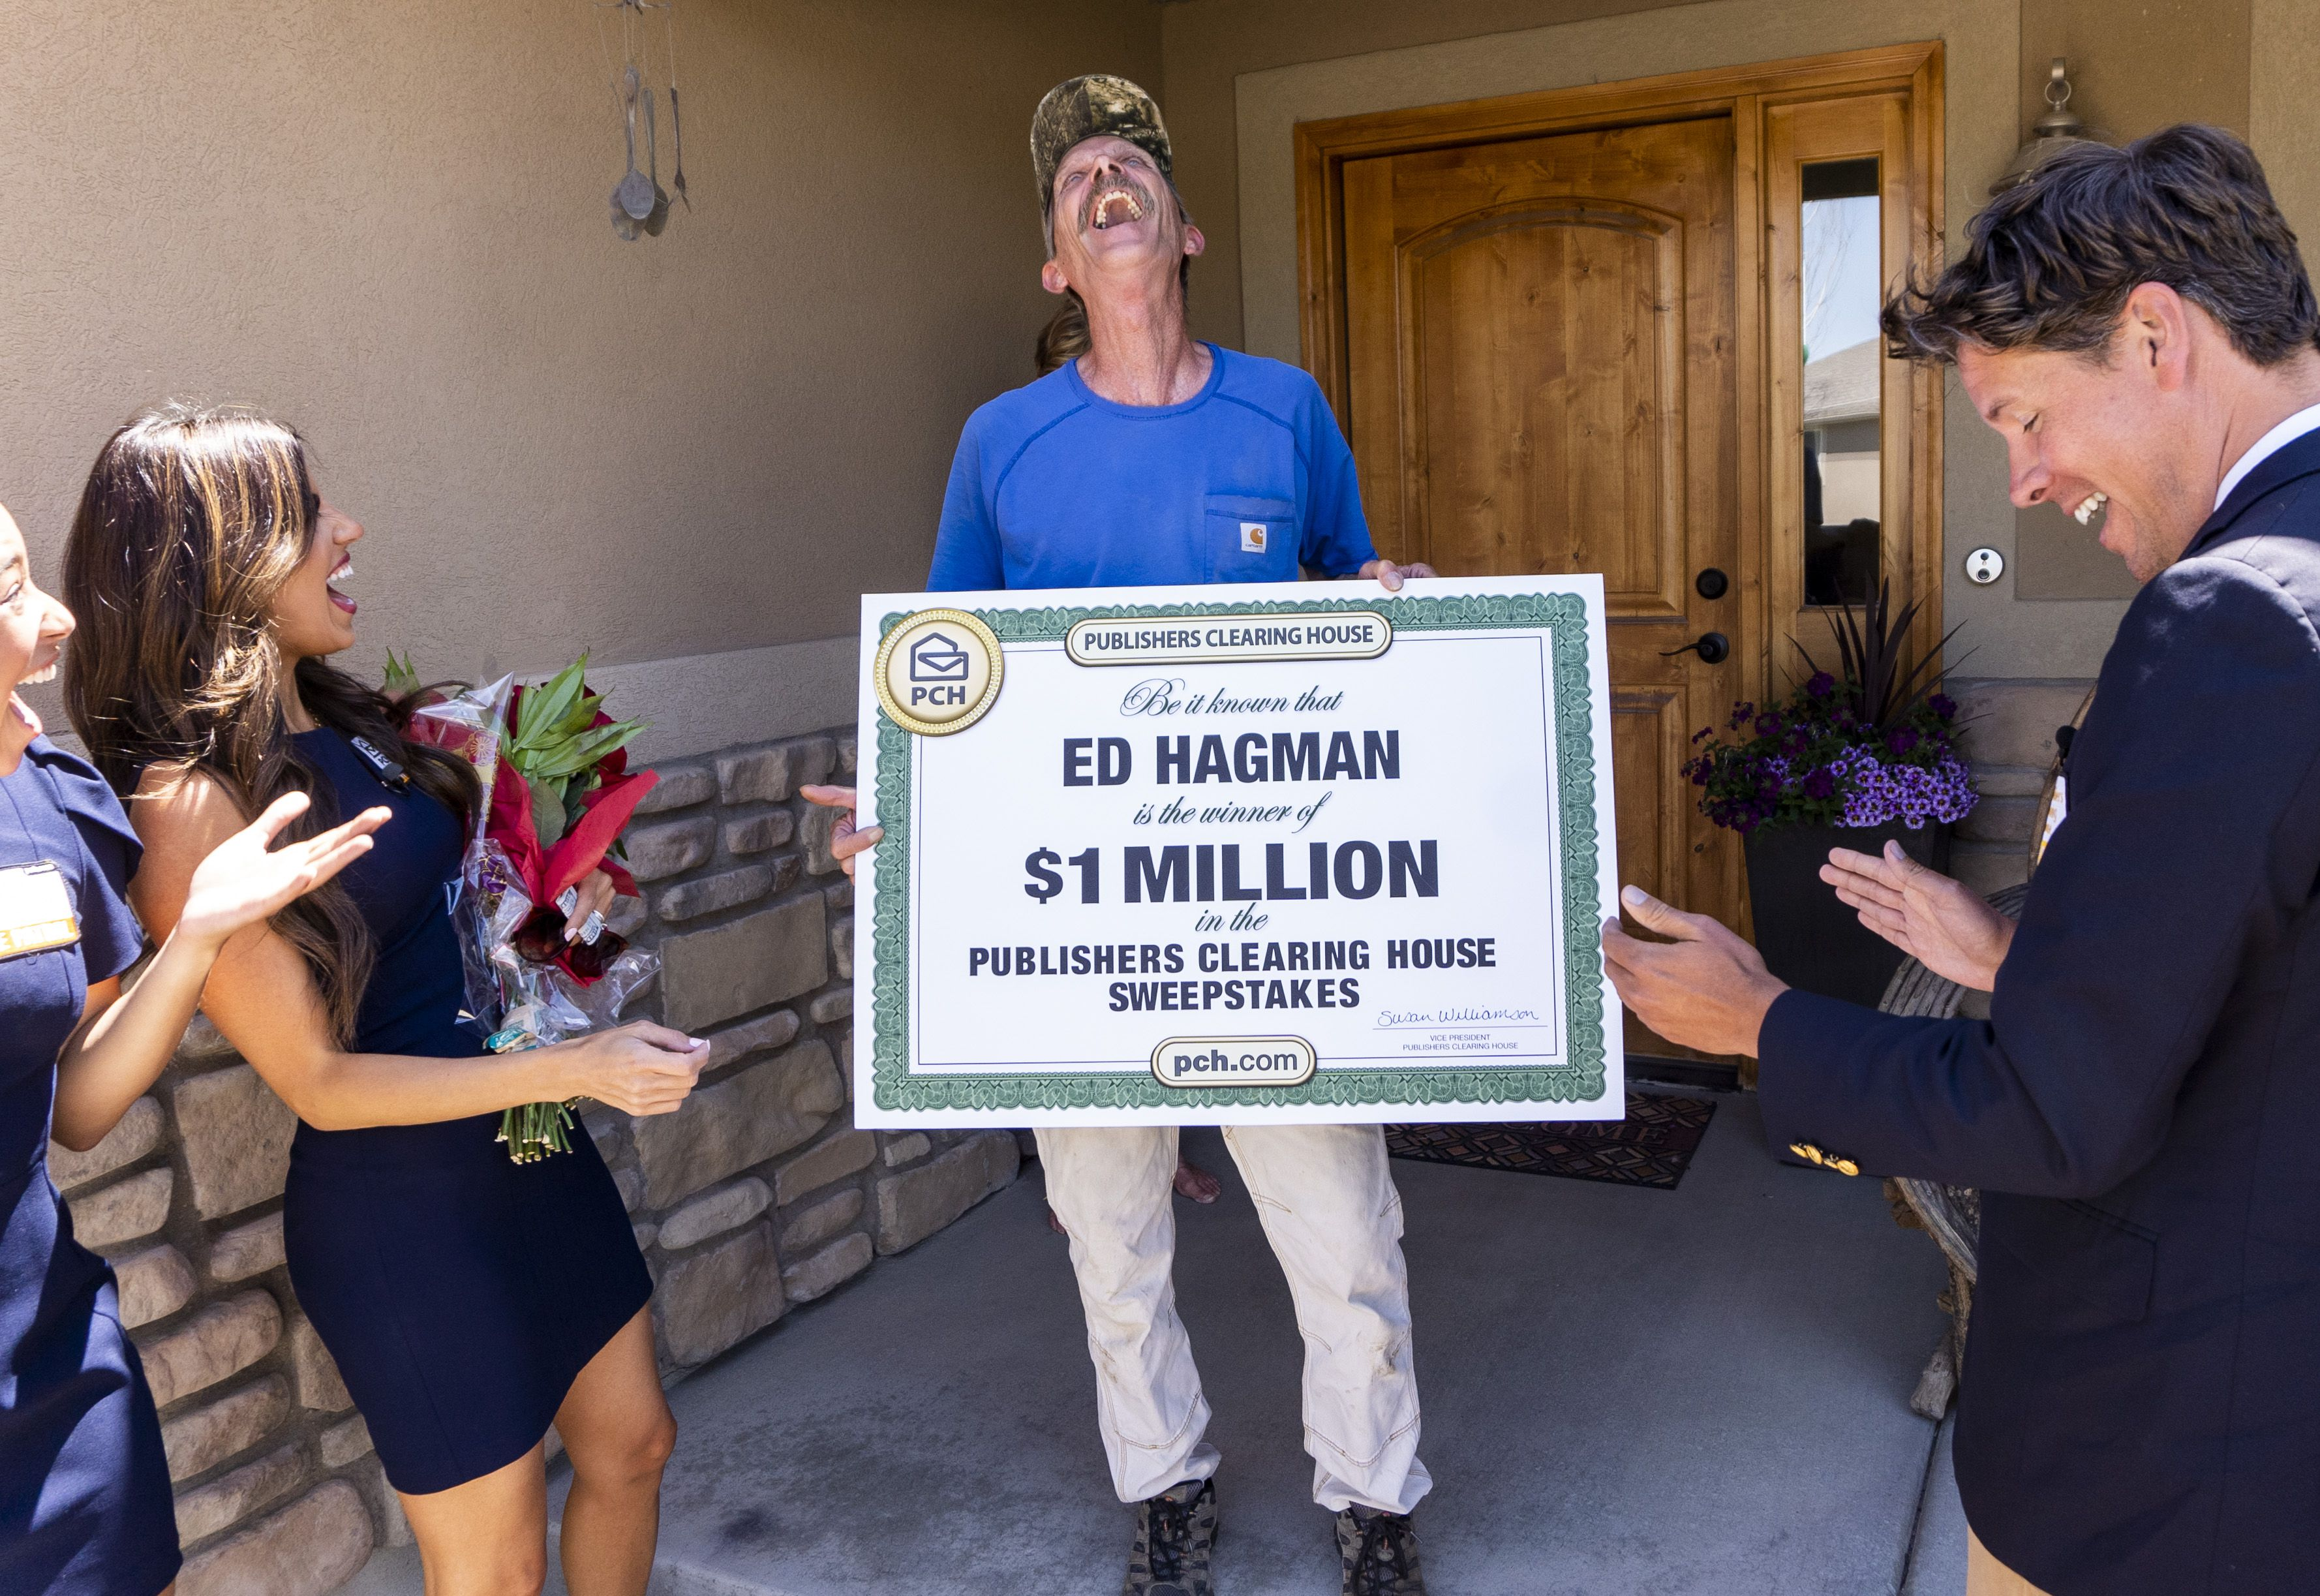 (Rick Egan | The Salt Lake Tribune) Members of the Prize Patrol from Publishers Clearing House, from left,  Bianca Quinnonez, Danielle Lam and  Howie Guja surprise Ed Hagman (center) with the news that he won $1,000,000, at his home in Herriman, on Friday, May 28th